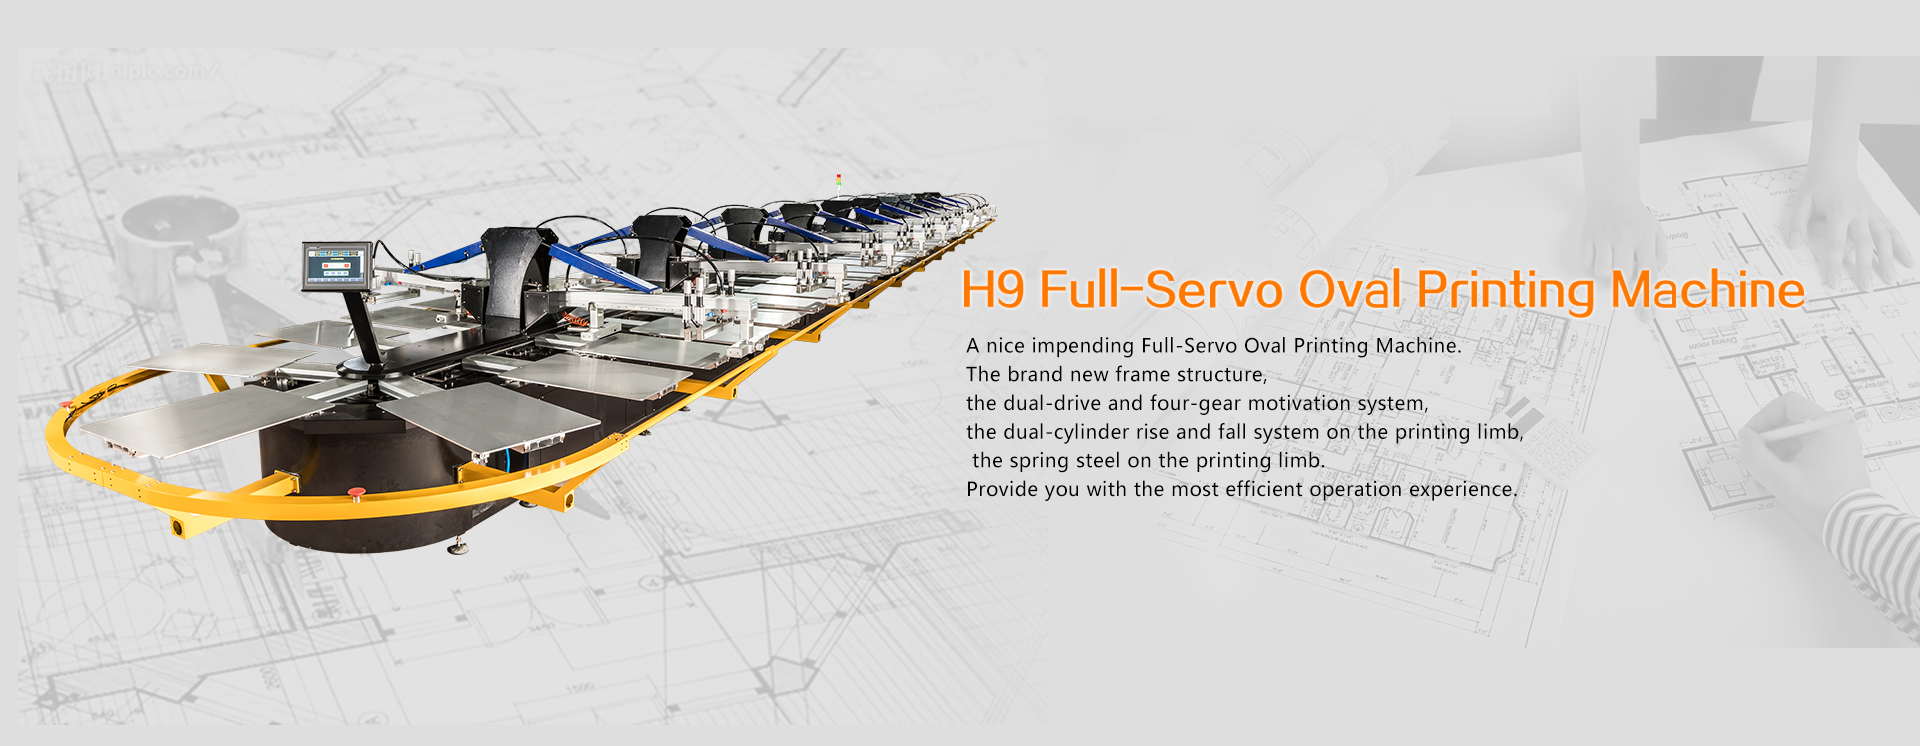 H9 Series Full-servo oval printing machine